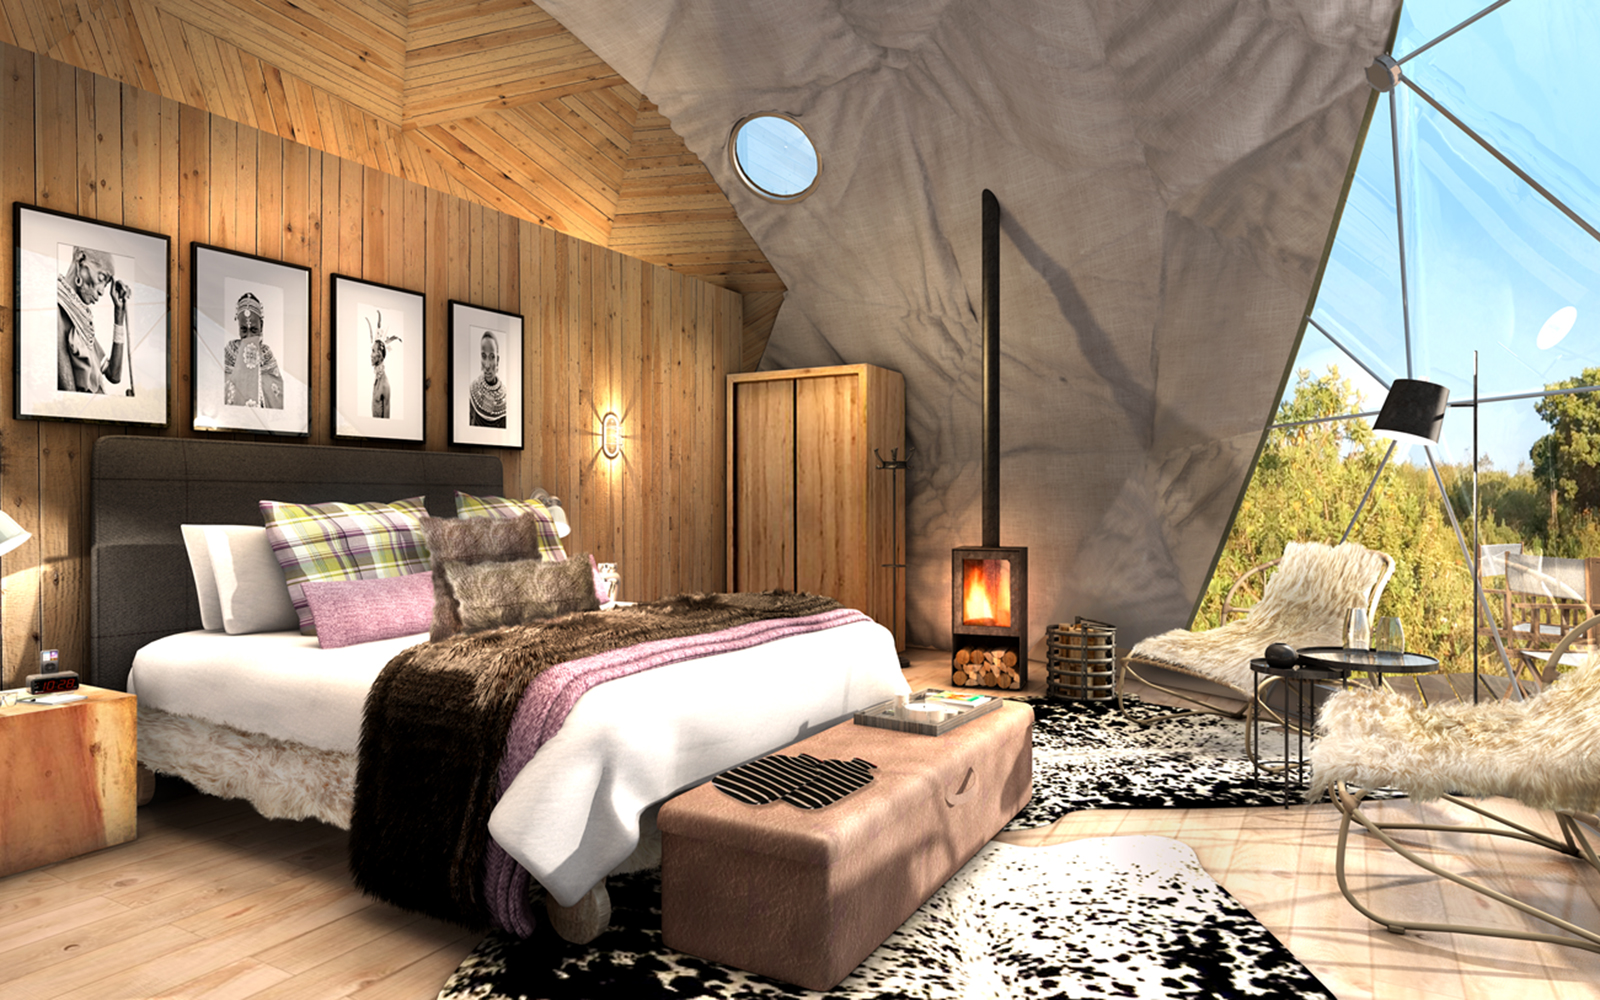 The Highlands Asilia Camps & Lodges